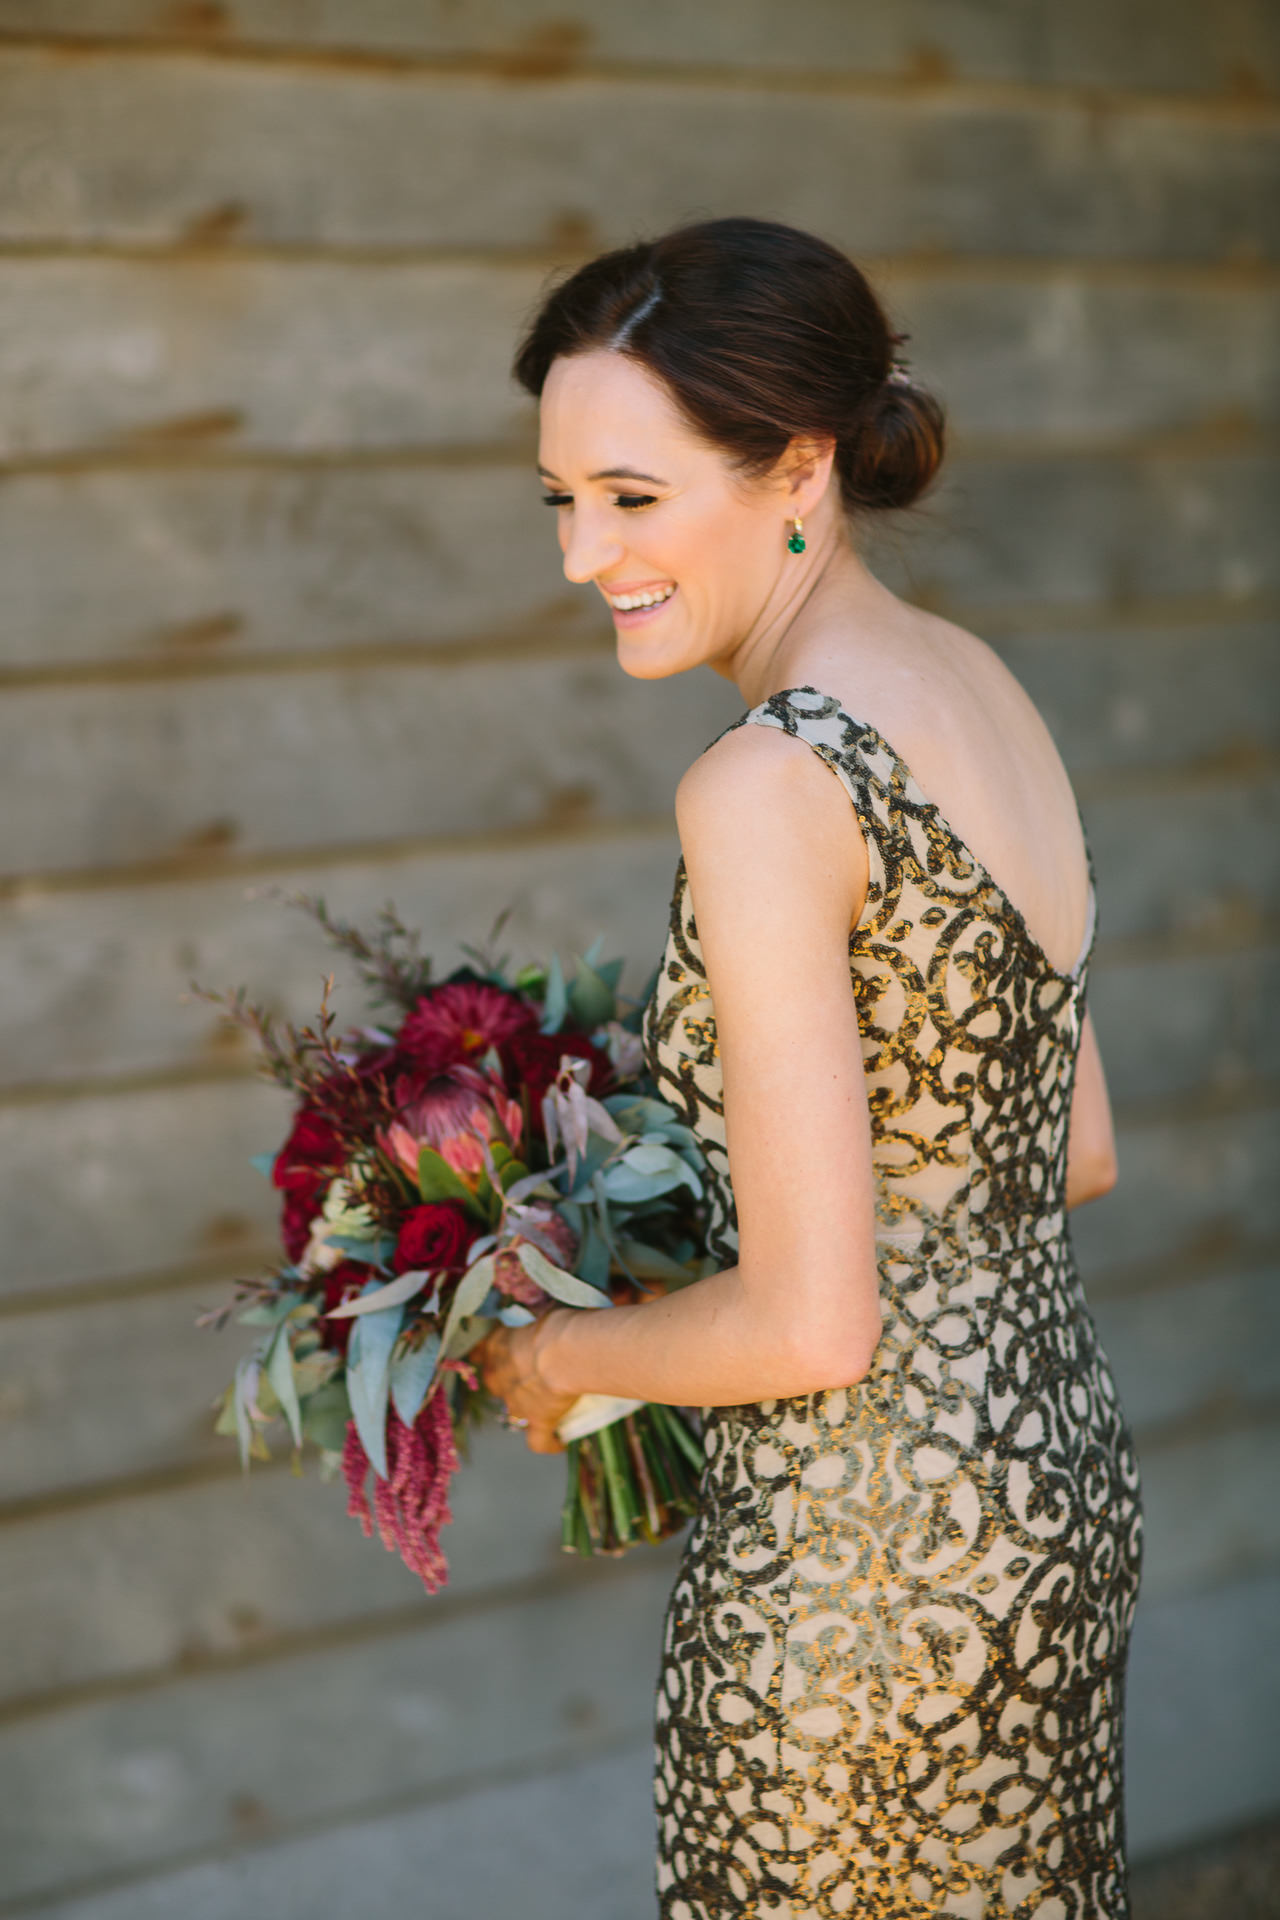 Bride laughs naturally as she holds her flowers